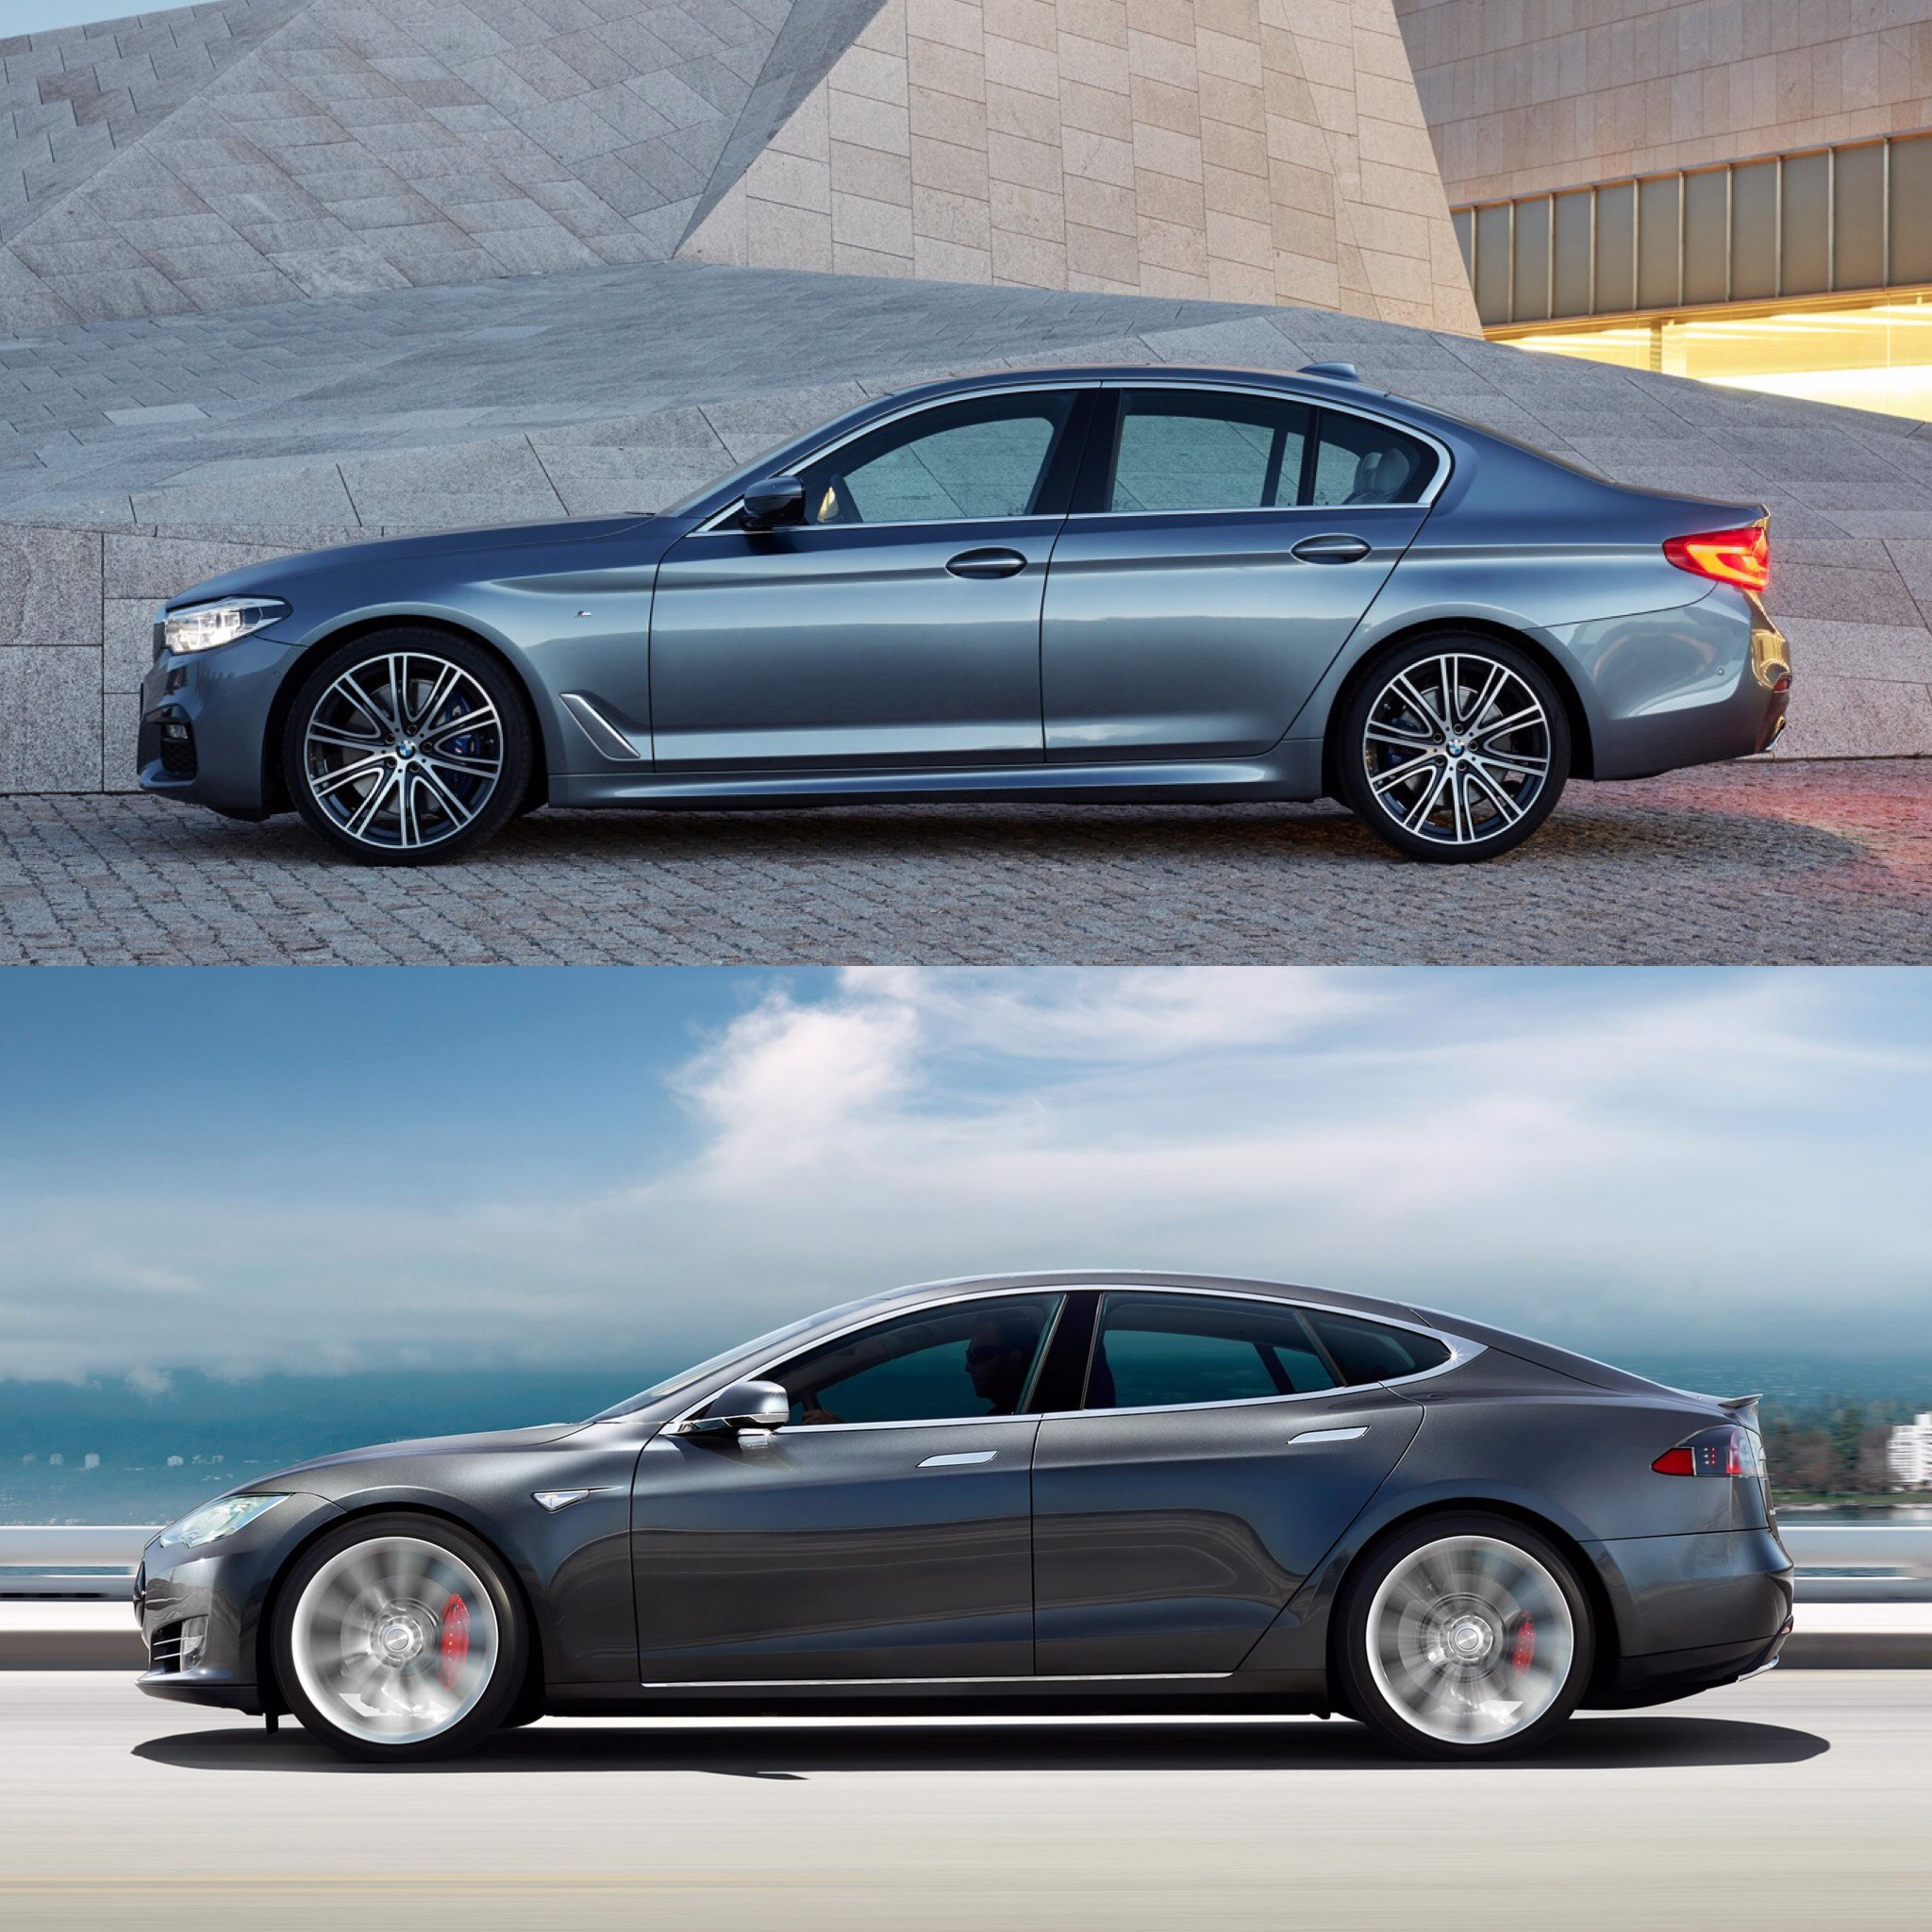 Which Is Better To Invest In: BMW Or Tesla?